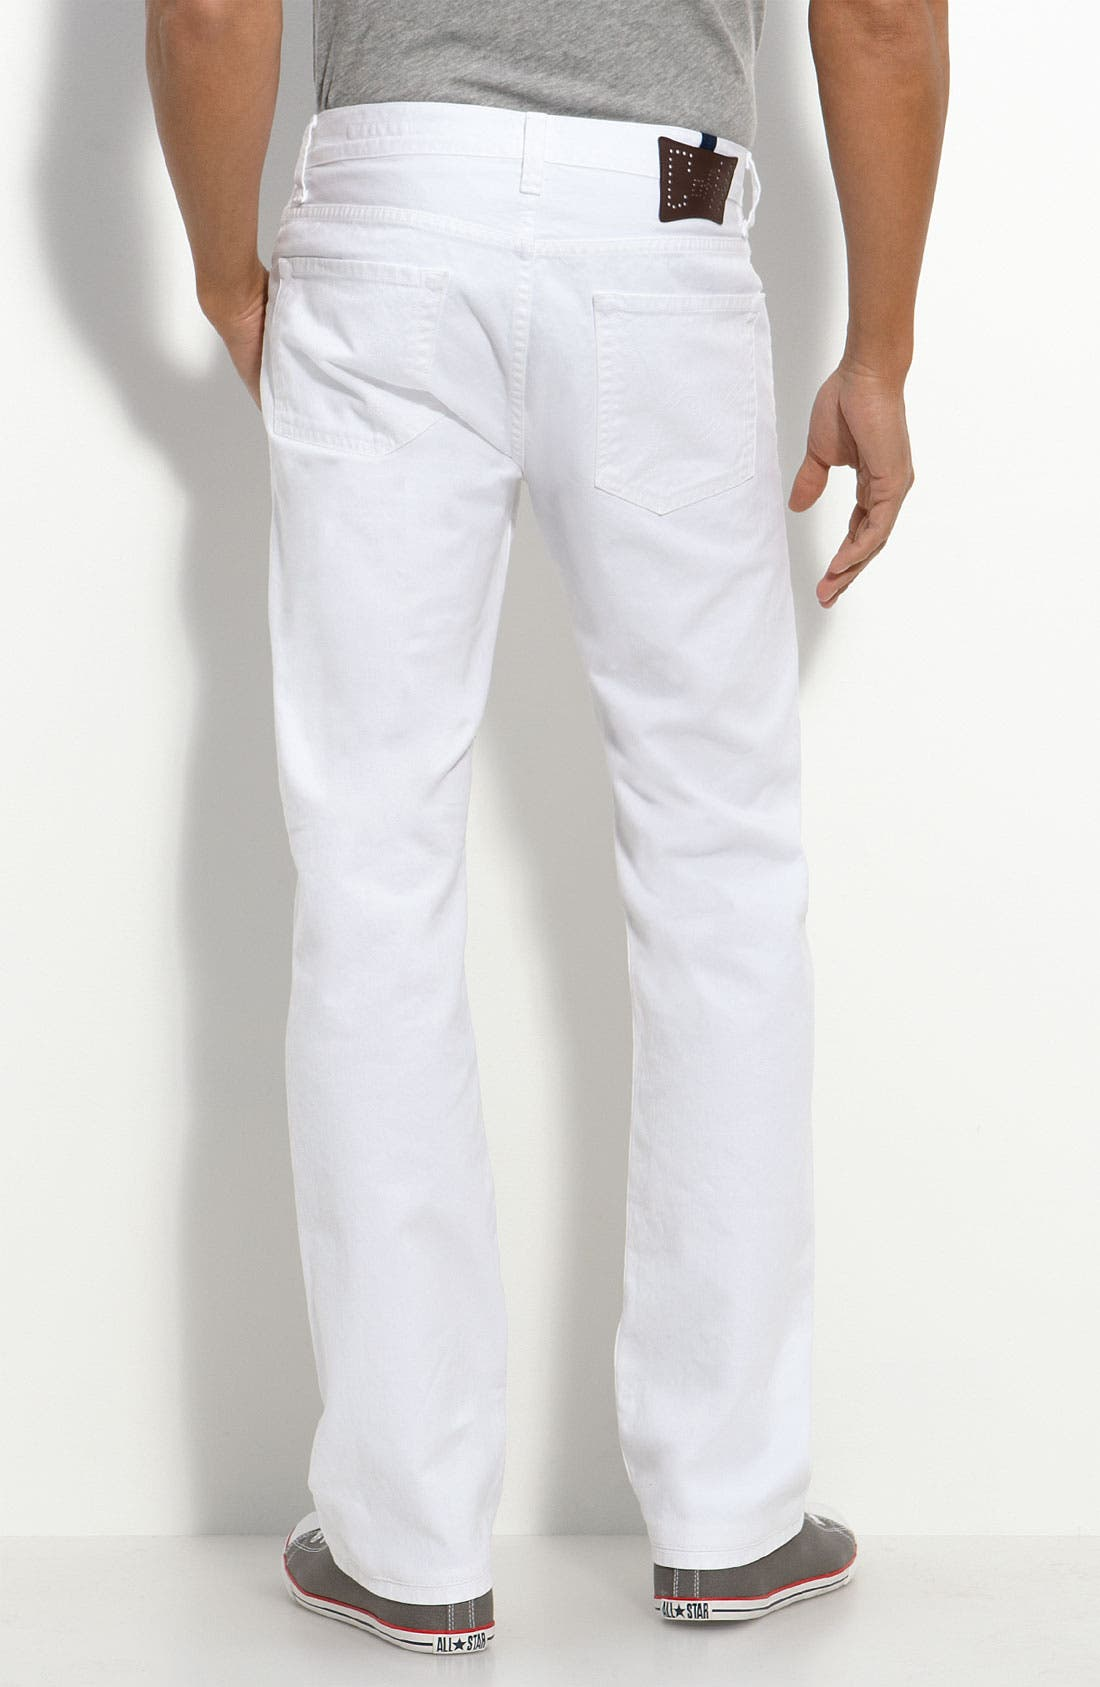 Alternate Image 1 Selected - Citizens of Humanity 'Sid' Straight Leg Jeans (Yeso Wash)